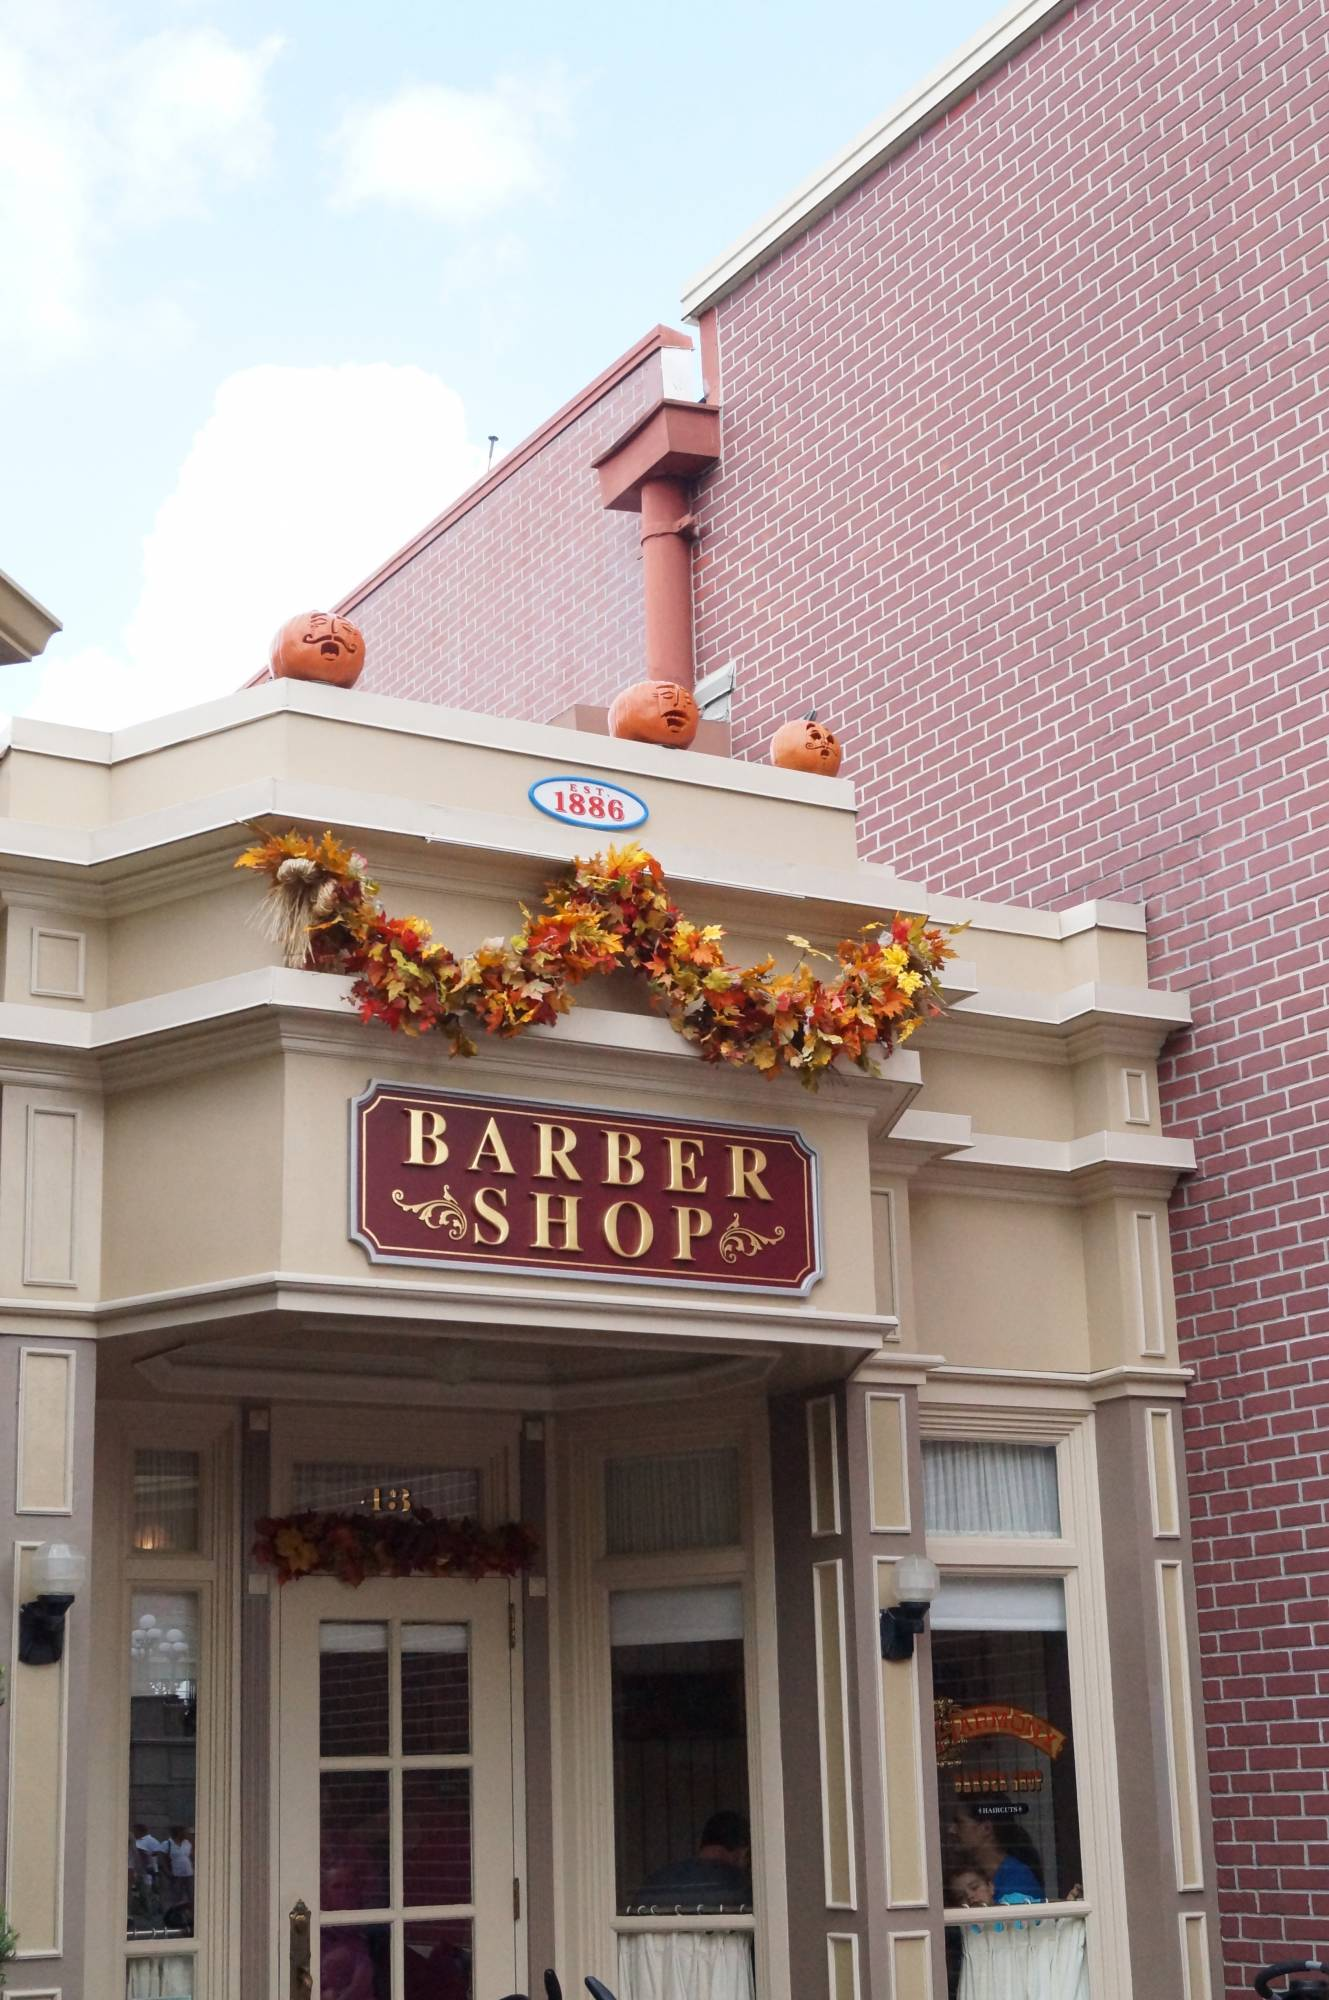 Little ones can get their first haircut at the Harmony Barber Shop in the Magic Kingdom | PassPorter.com